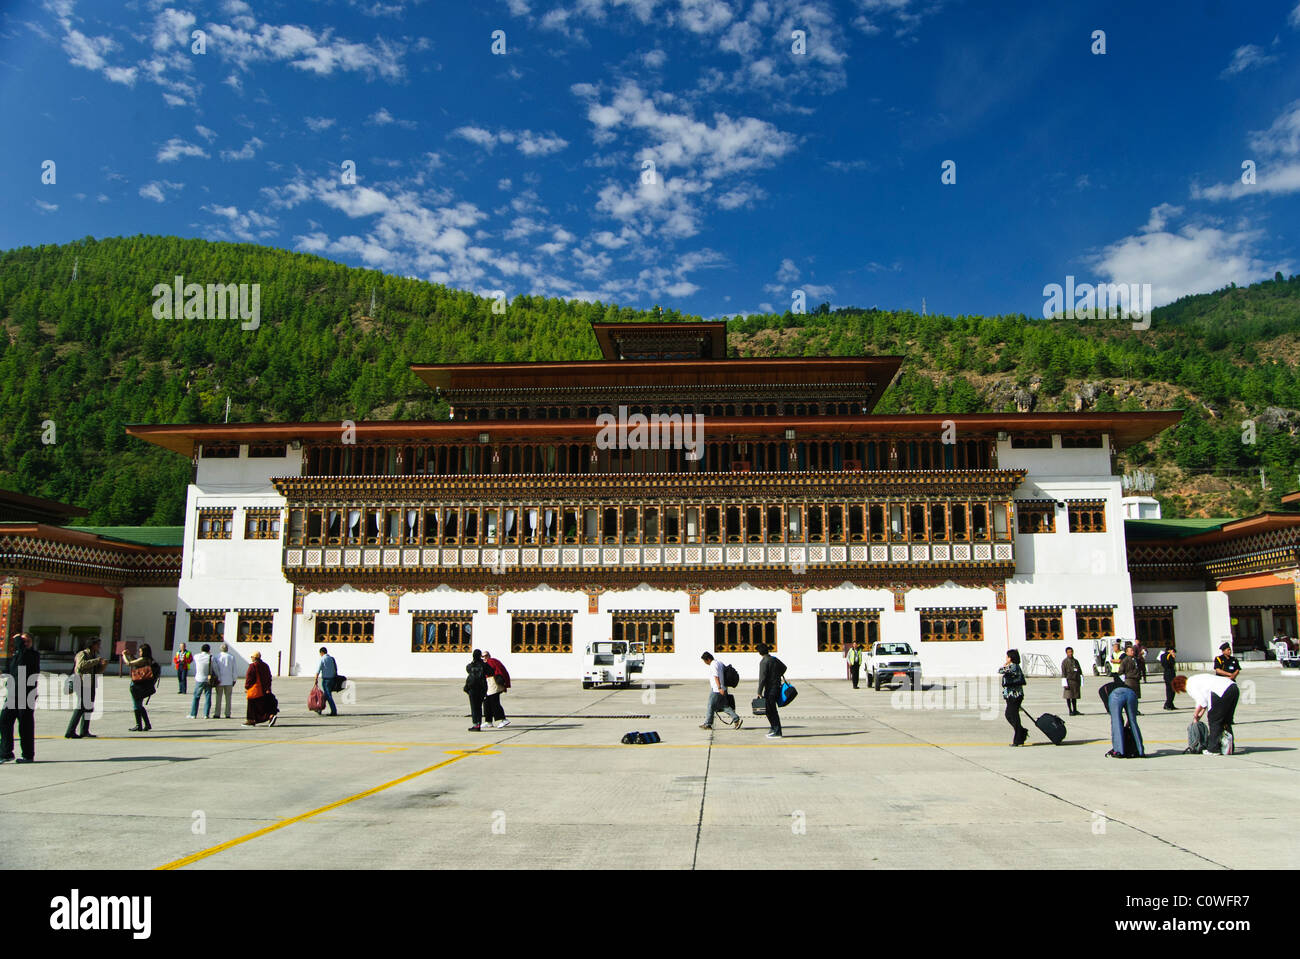 Terminal Building at the Paro International Airport - Stock Image